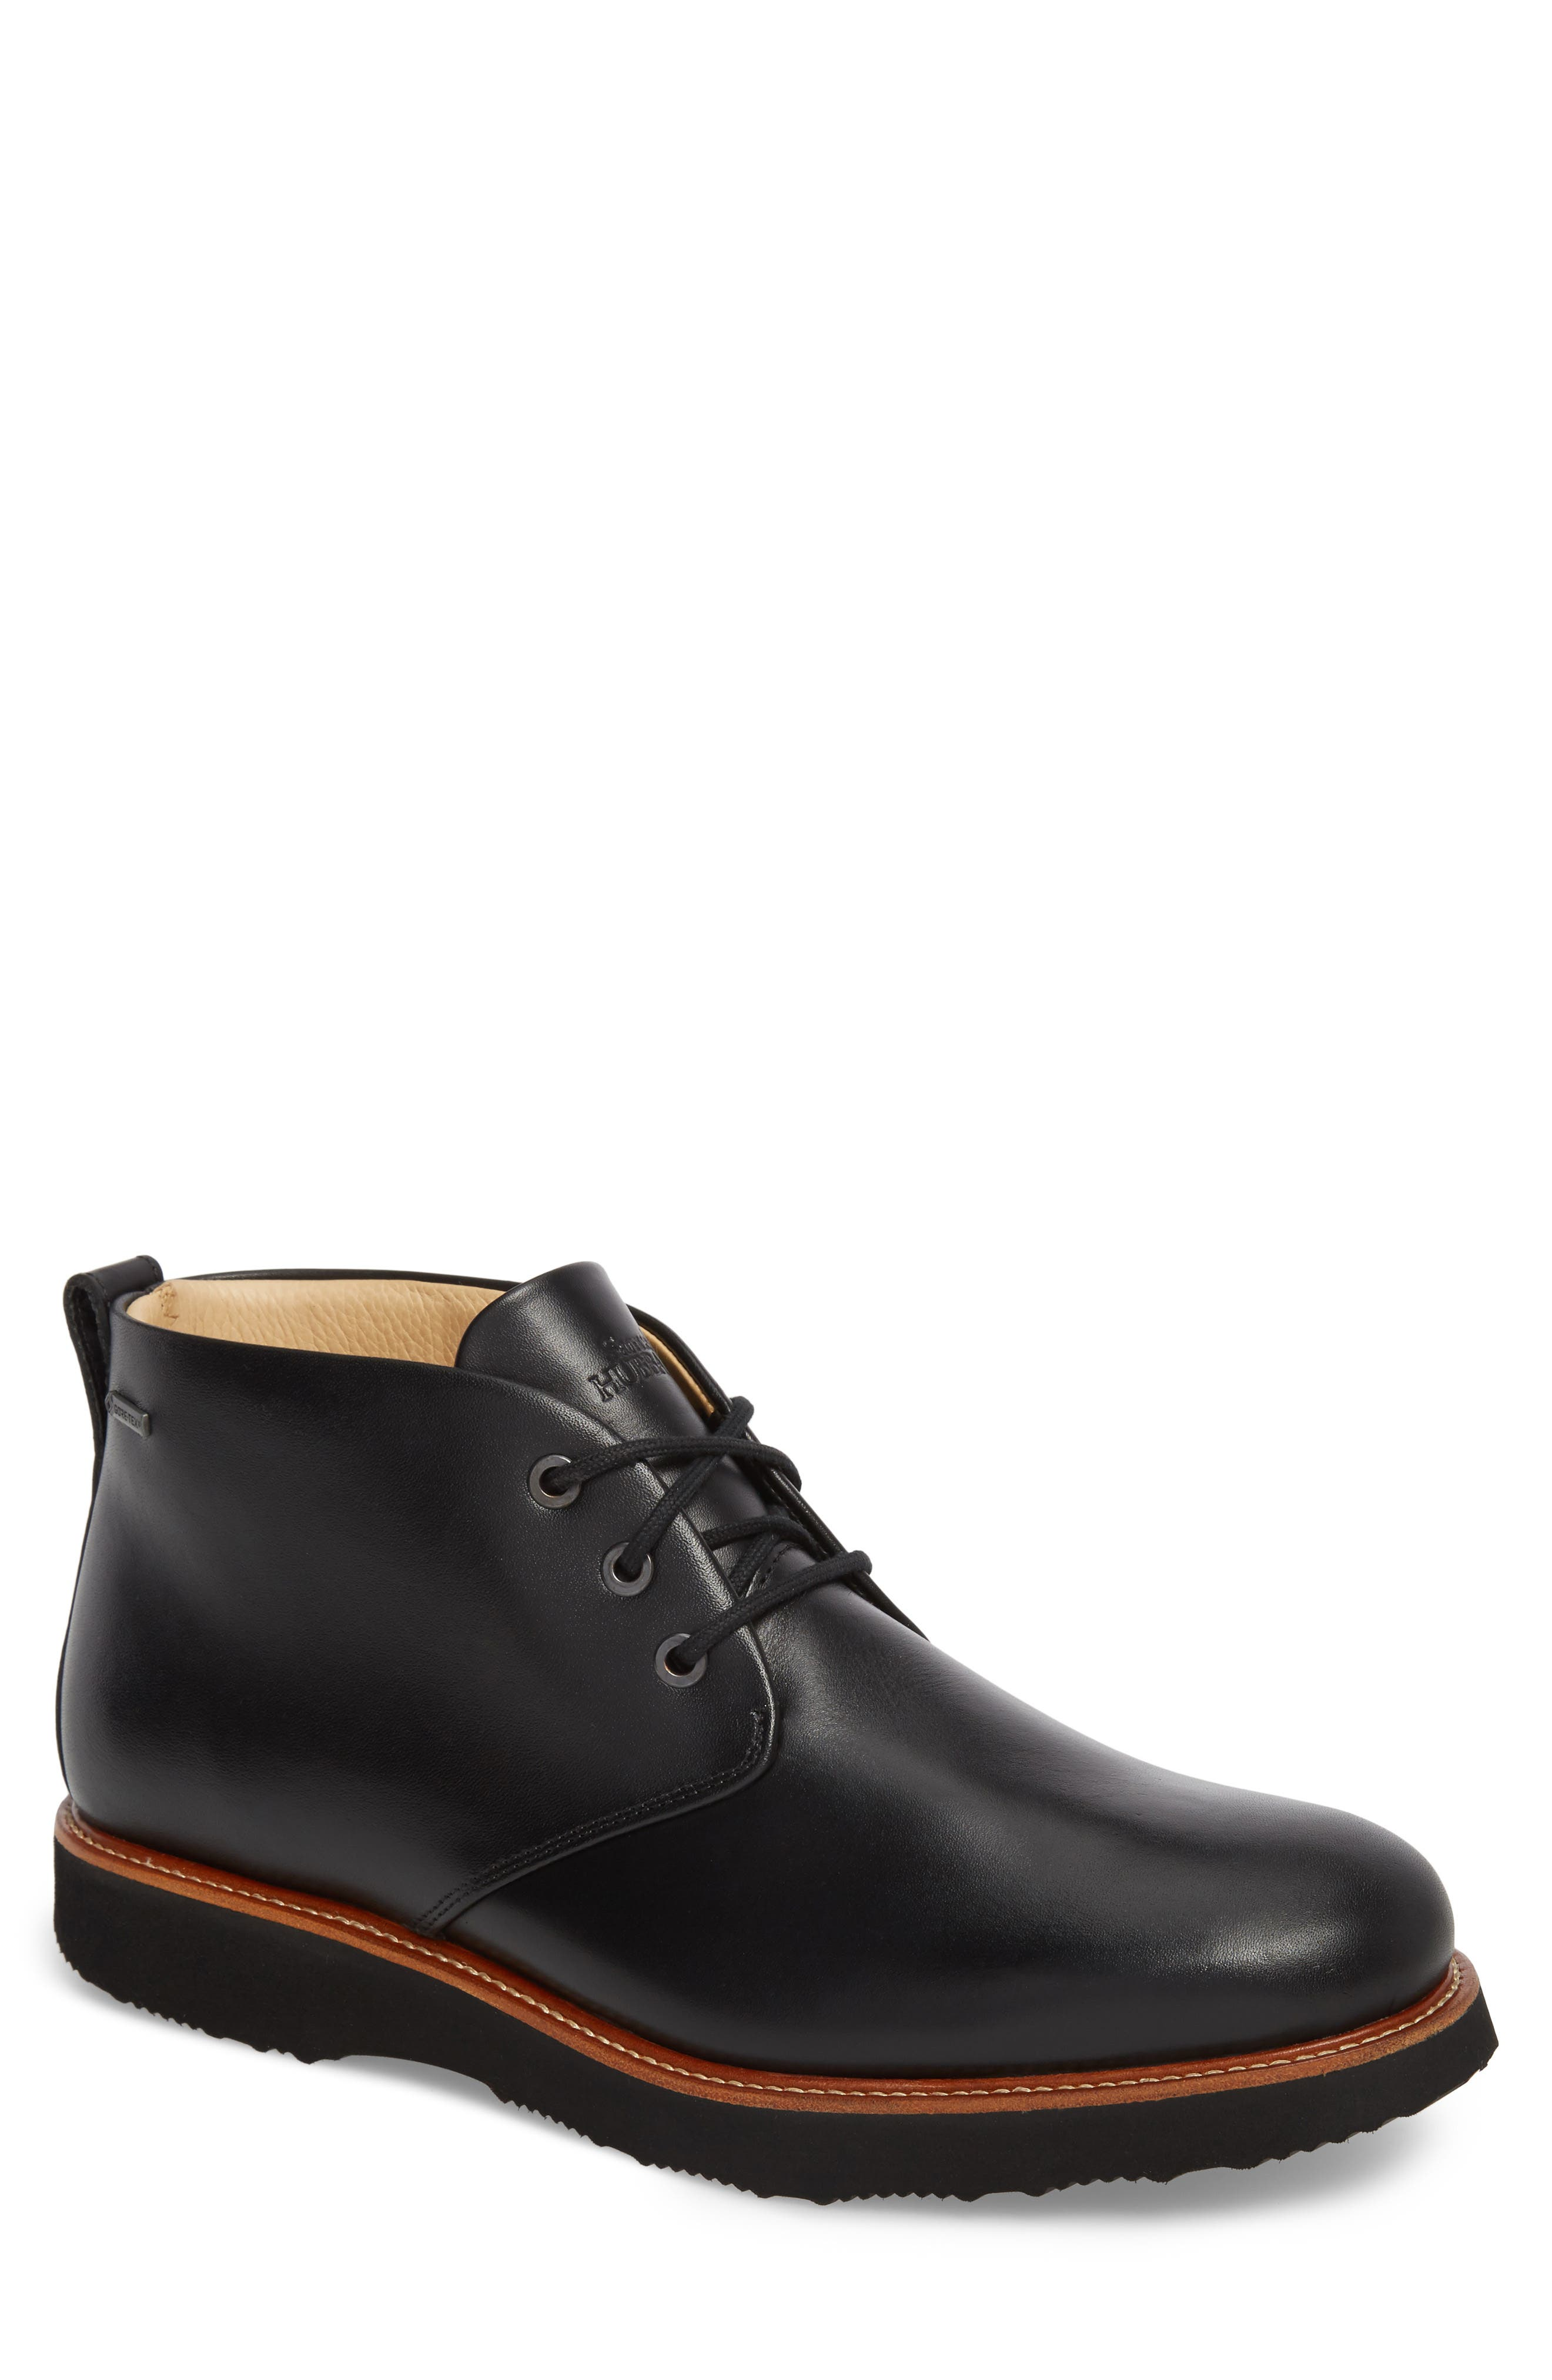 Main Image - Samuel Hubbard Re-Boot Waterproof Gore-Tex® Chukka Boot (Men)